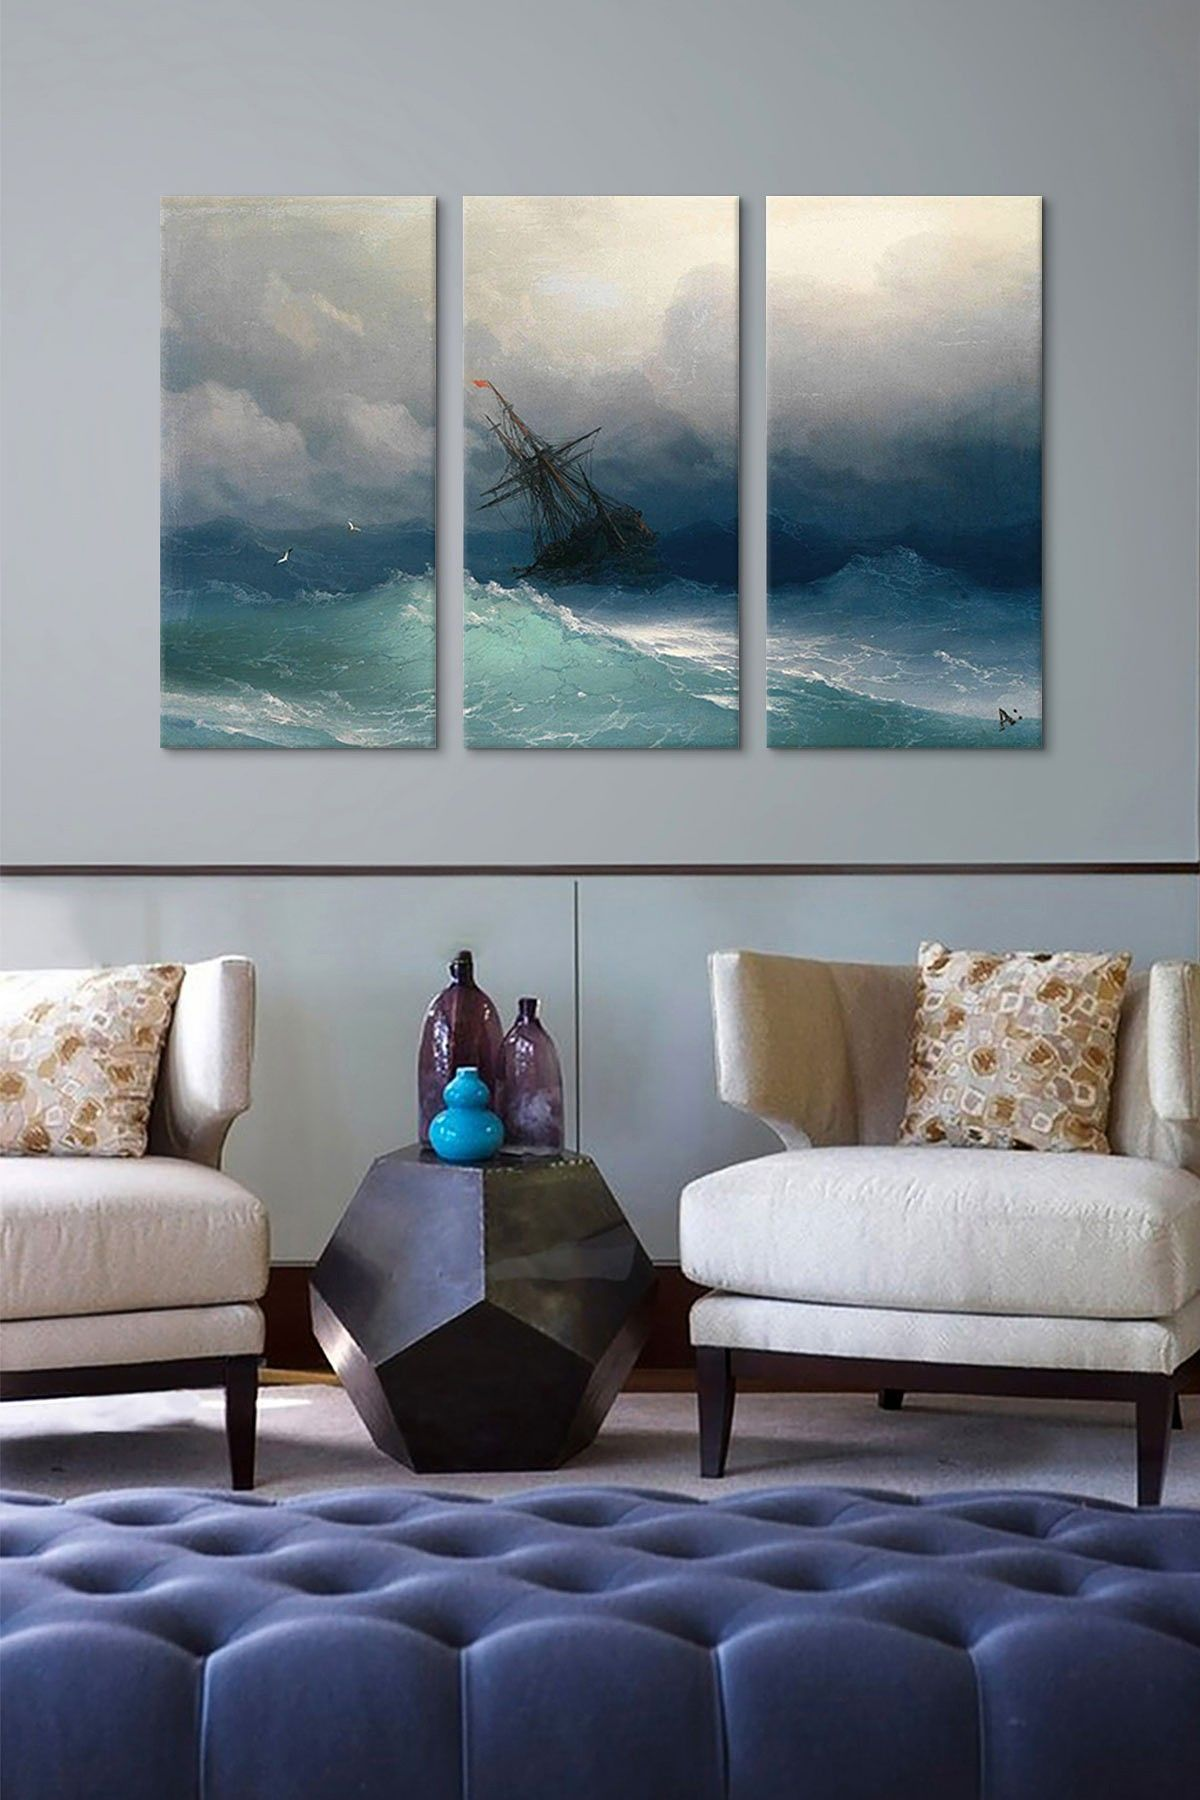 Stormy Seas 3 Panel Sectional Wall Art